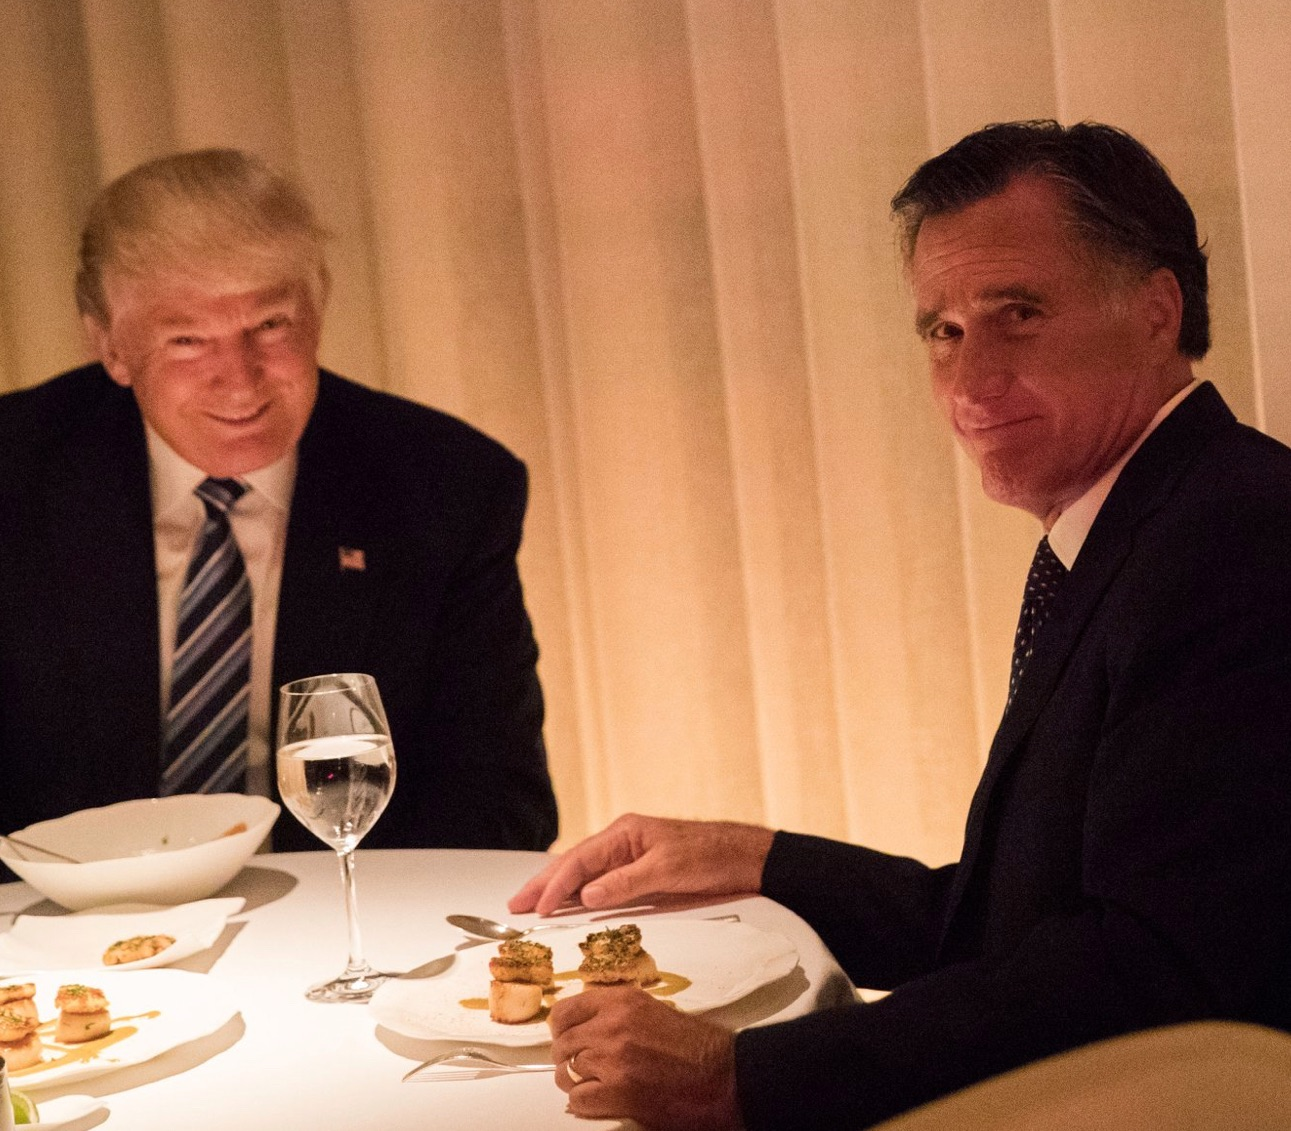 trump surrogate roger stone trump interviewed romney to torture from the disturbing photo above it was already pretty damned obvious what was going on when donald trump met mitt romney for dinner dangling the prospect